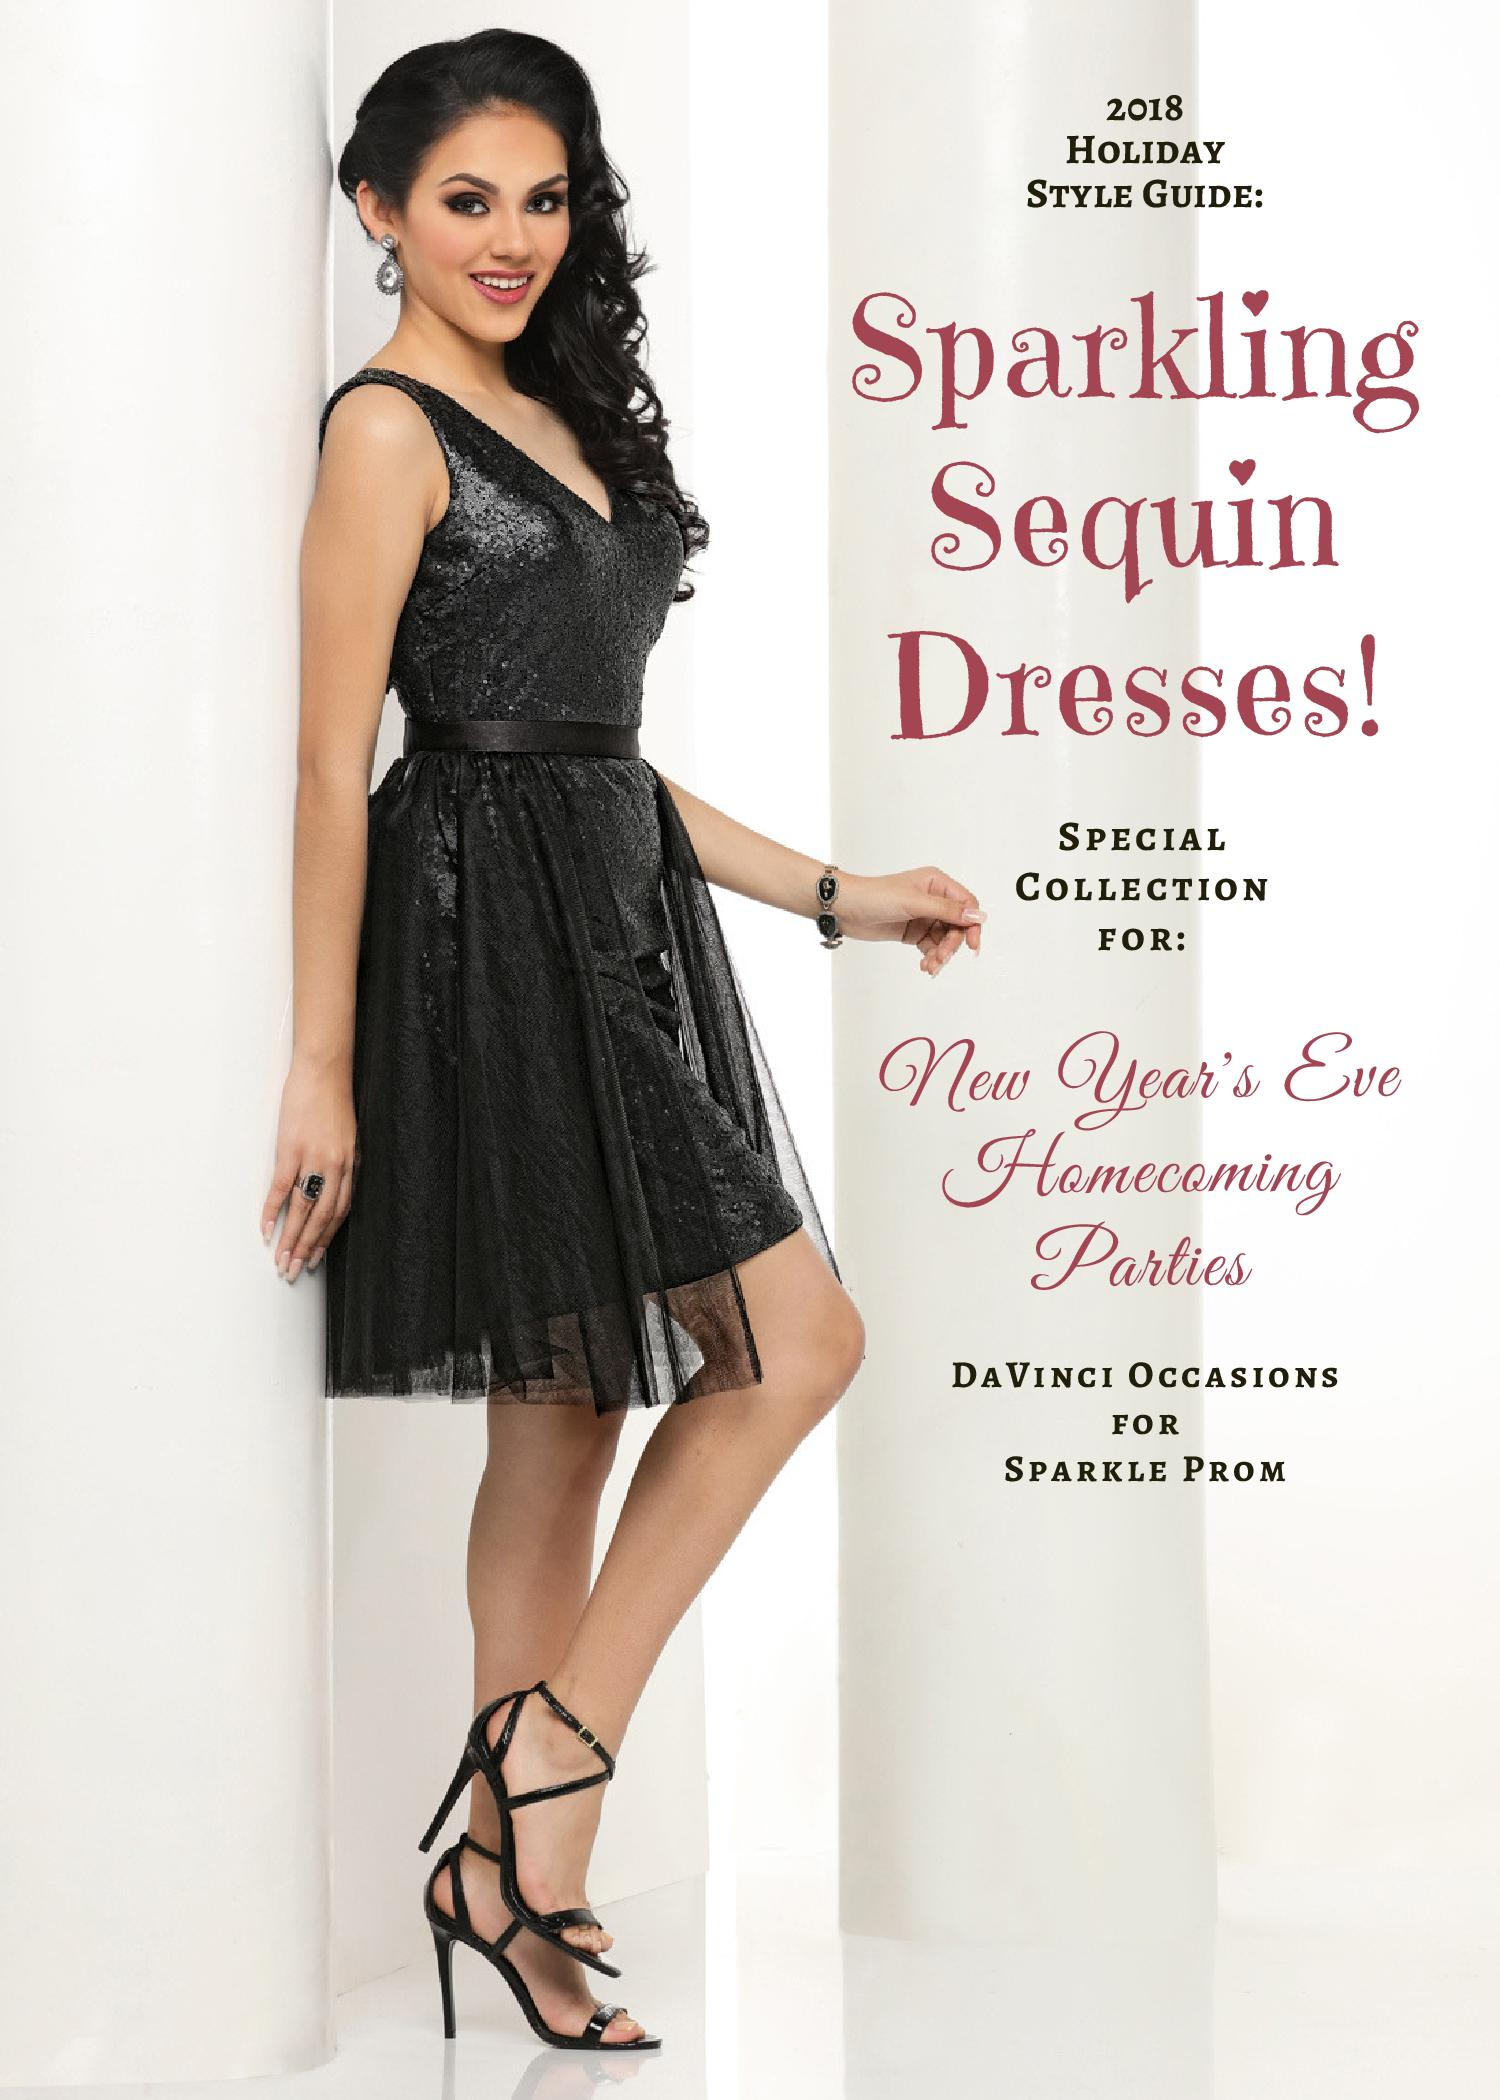 Sparkling Sequin Dress Collection: NYE, Homecoming & Parties – Sparkle Prom Fashion Blog